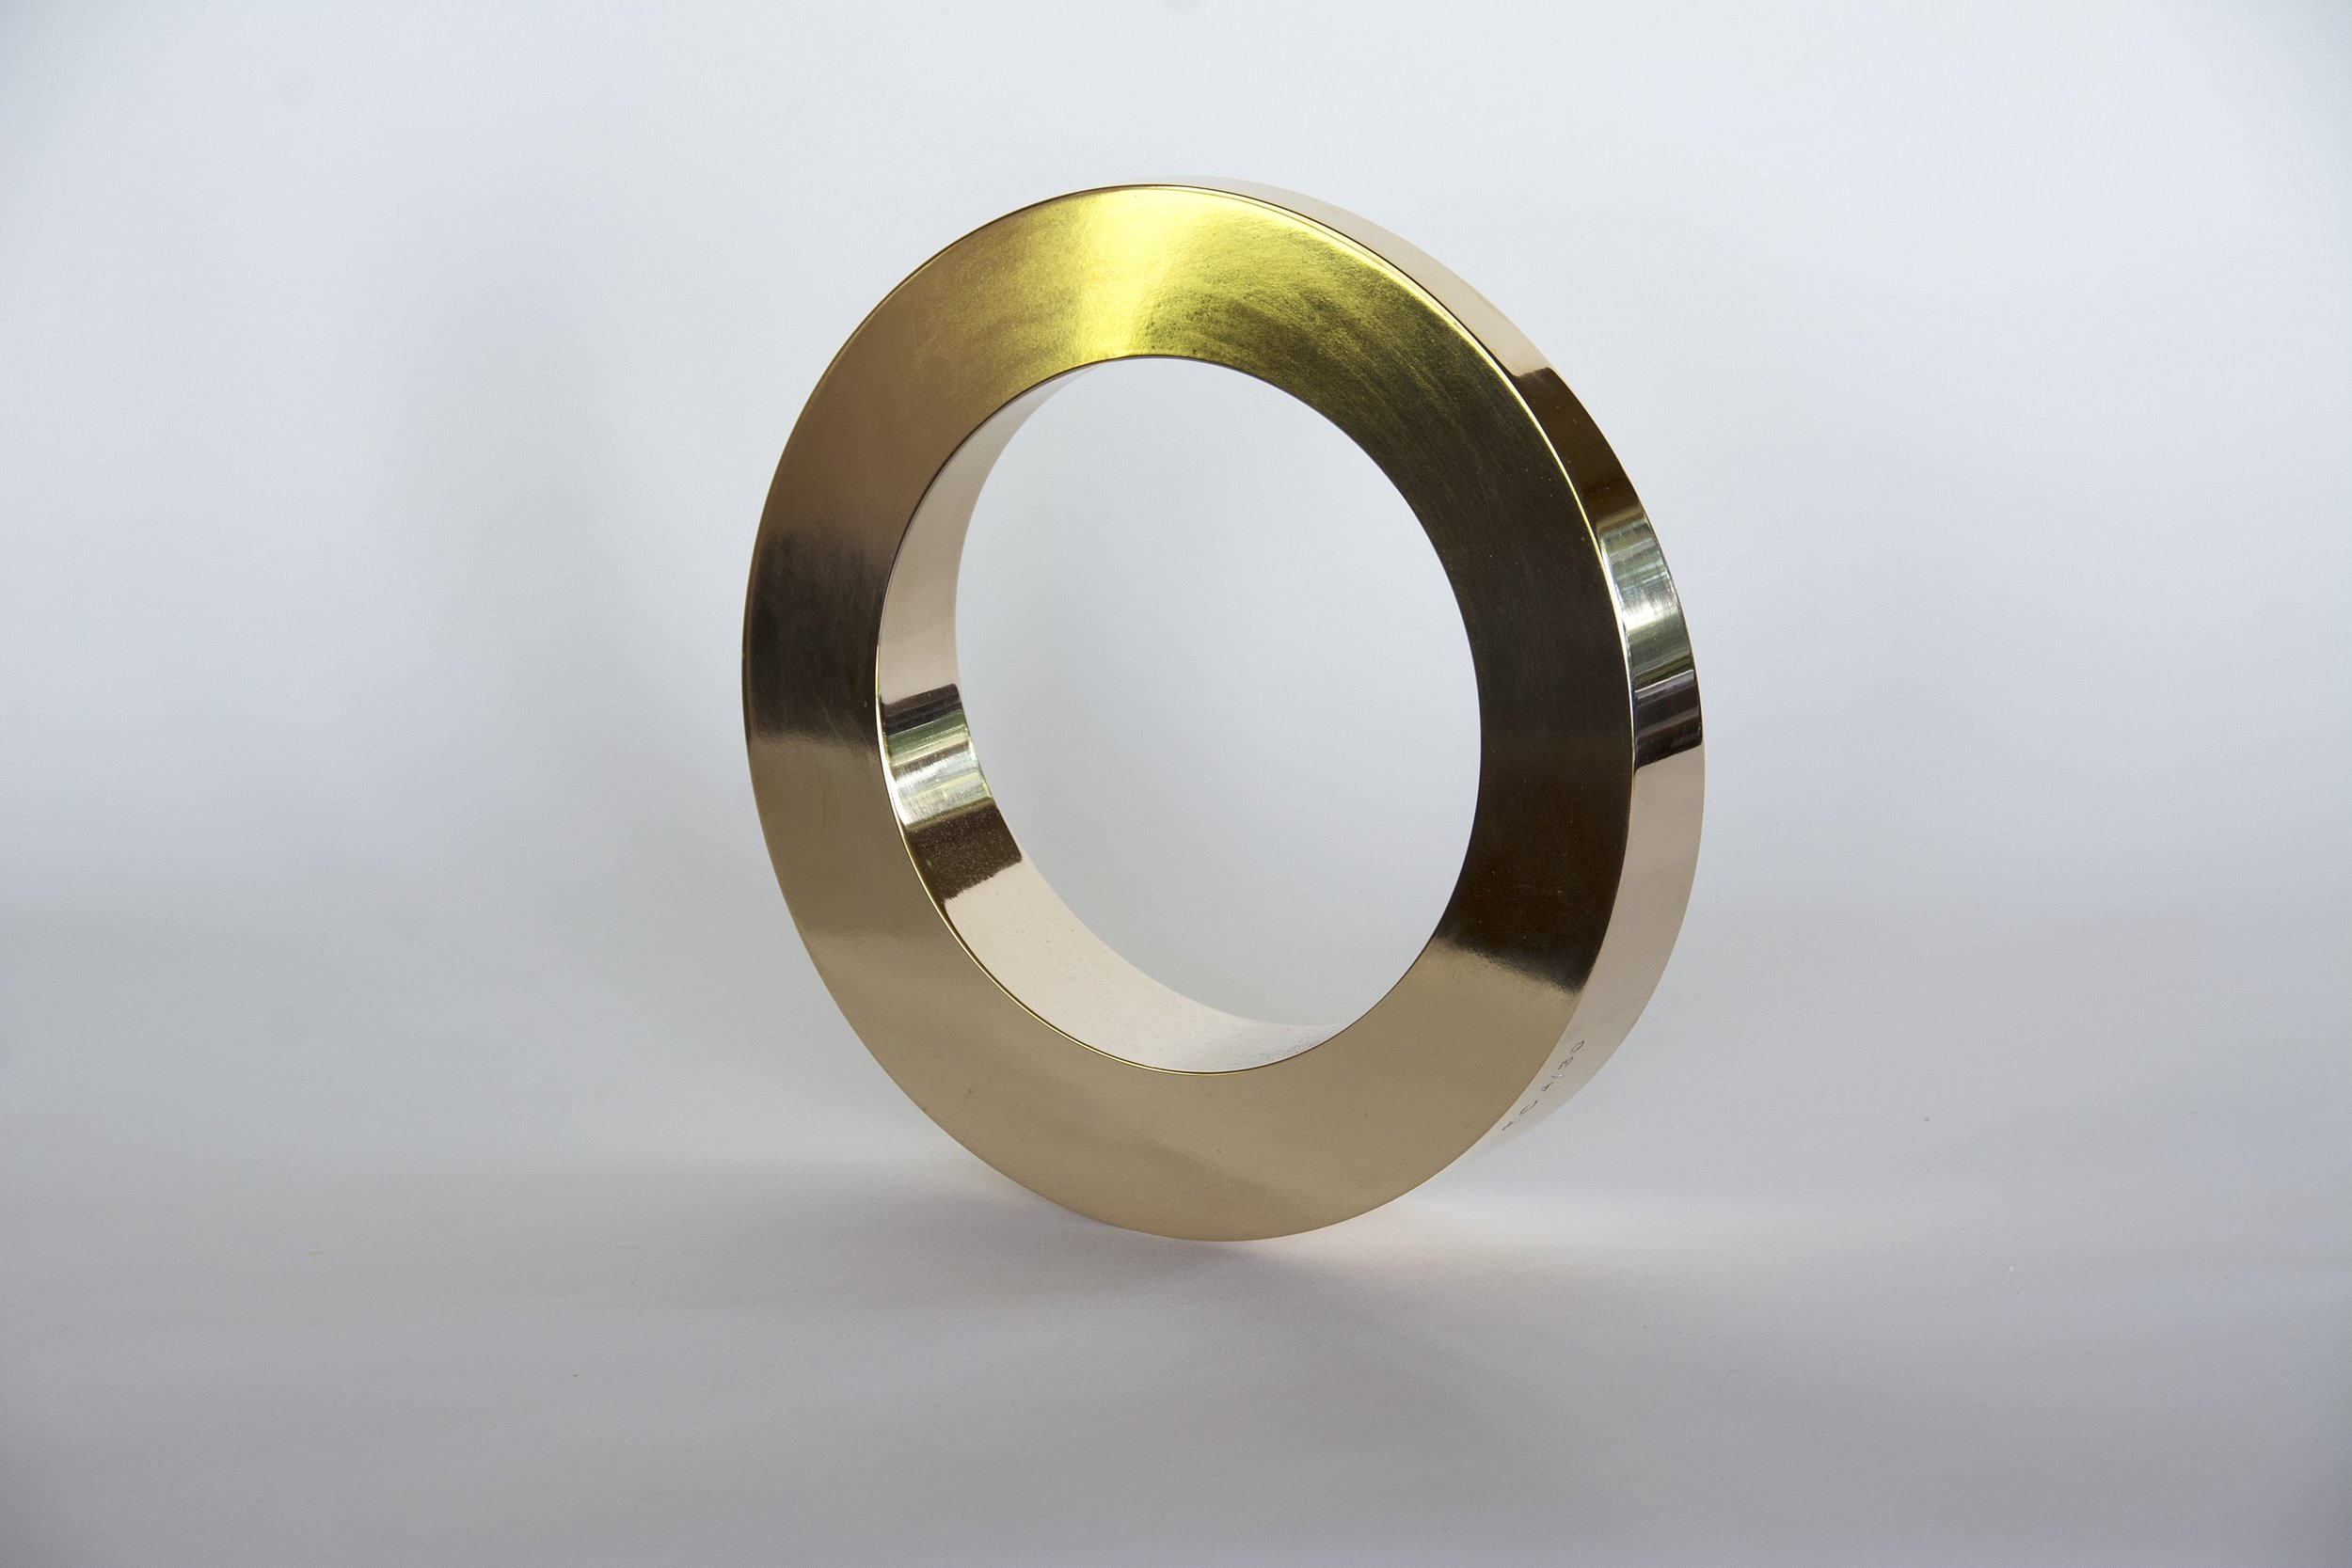 Solid bronze kinetic circle sculpture Tarik Currimbhoy